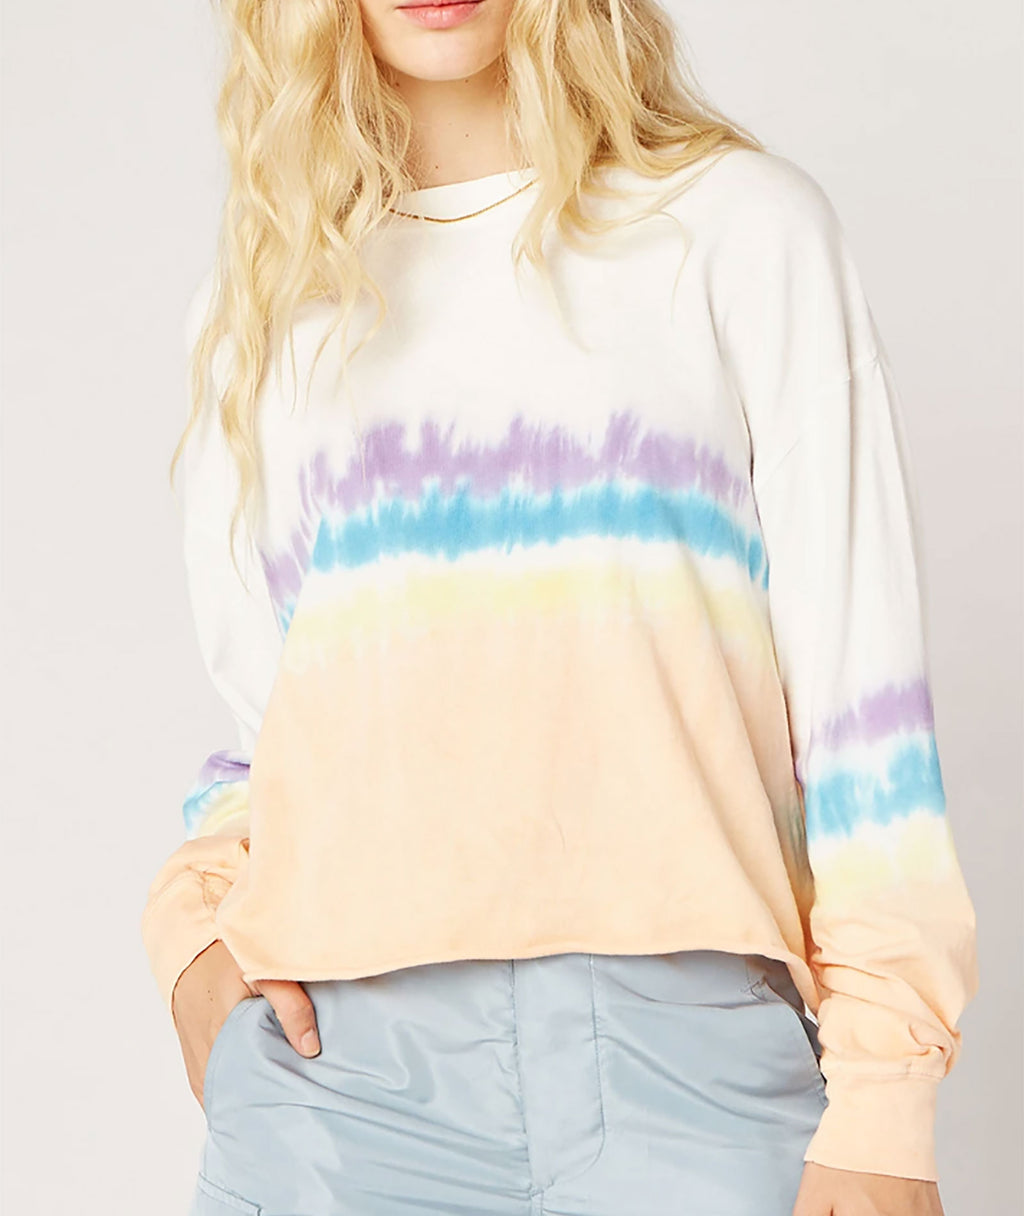 Daydreamer Women Sherbet Tie Dye Crop Top